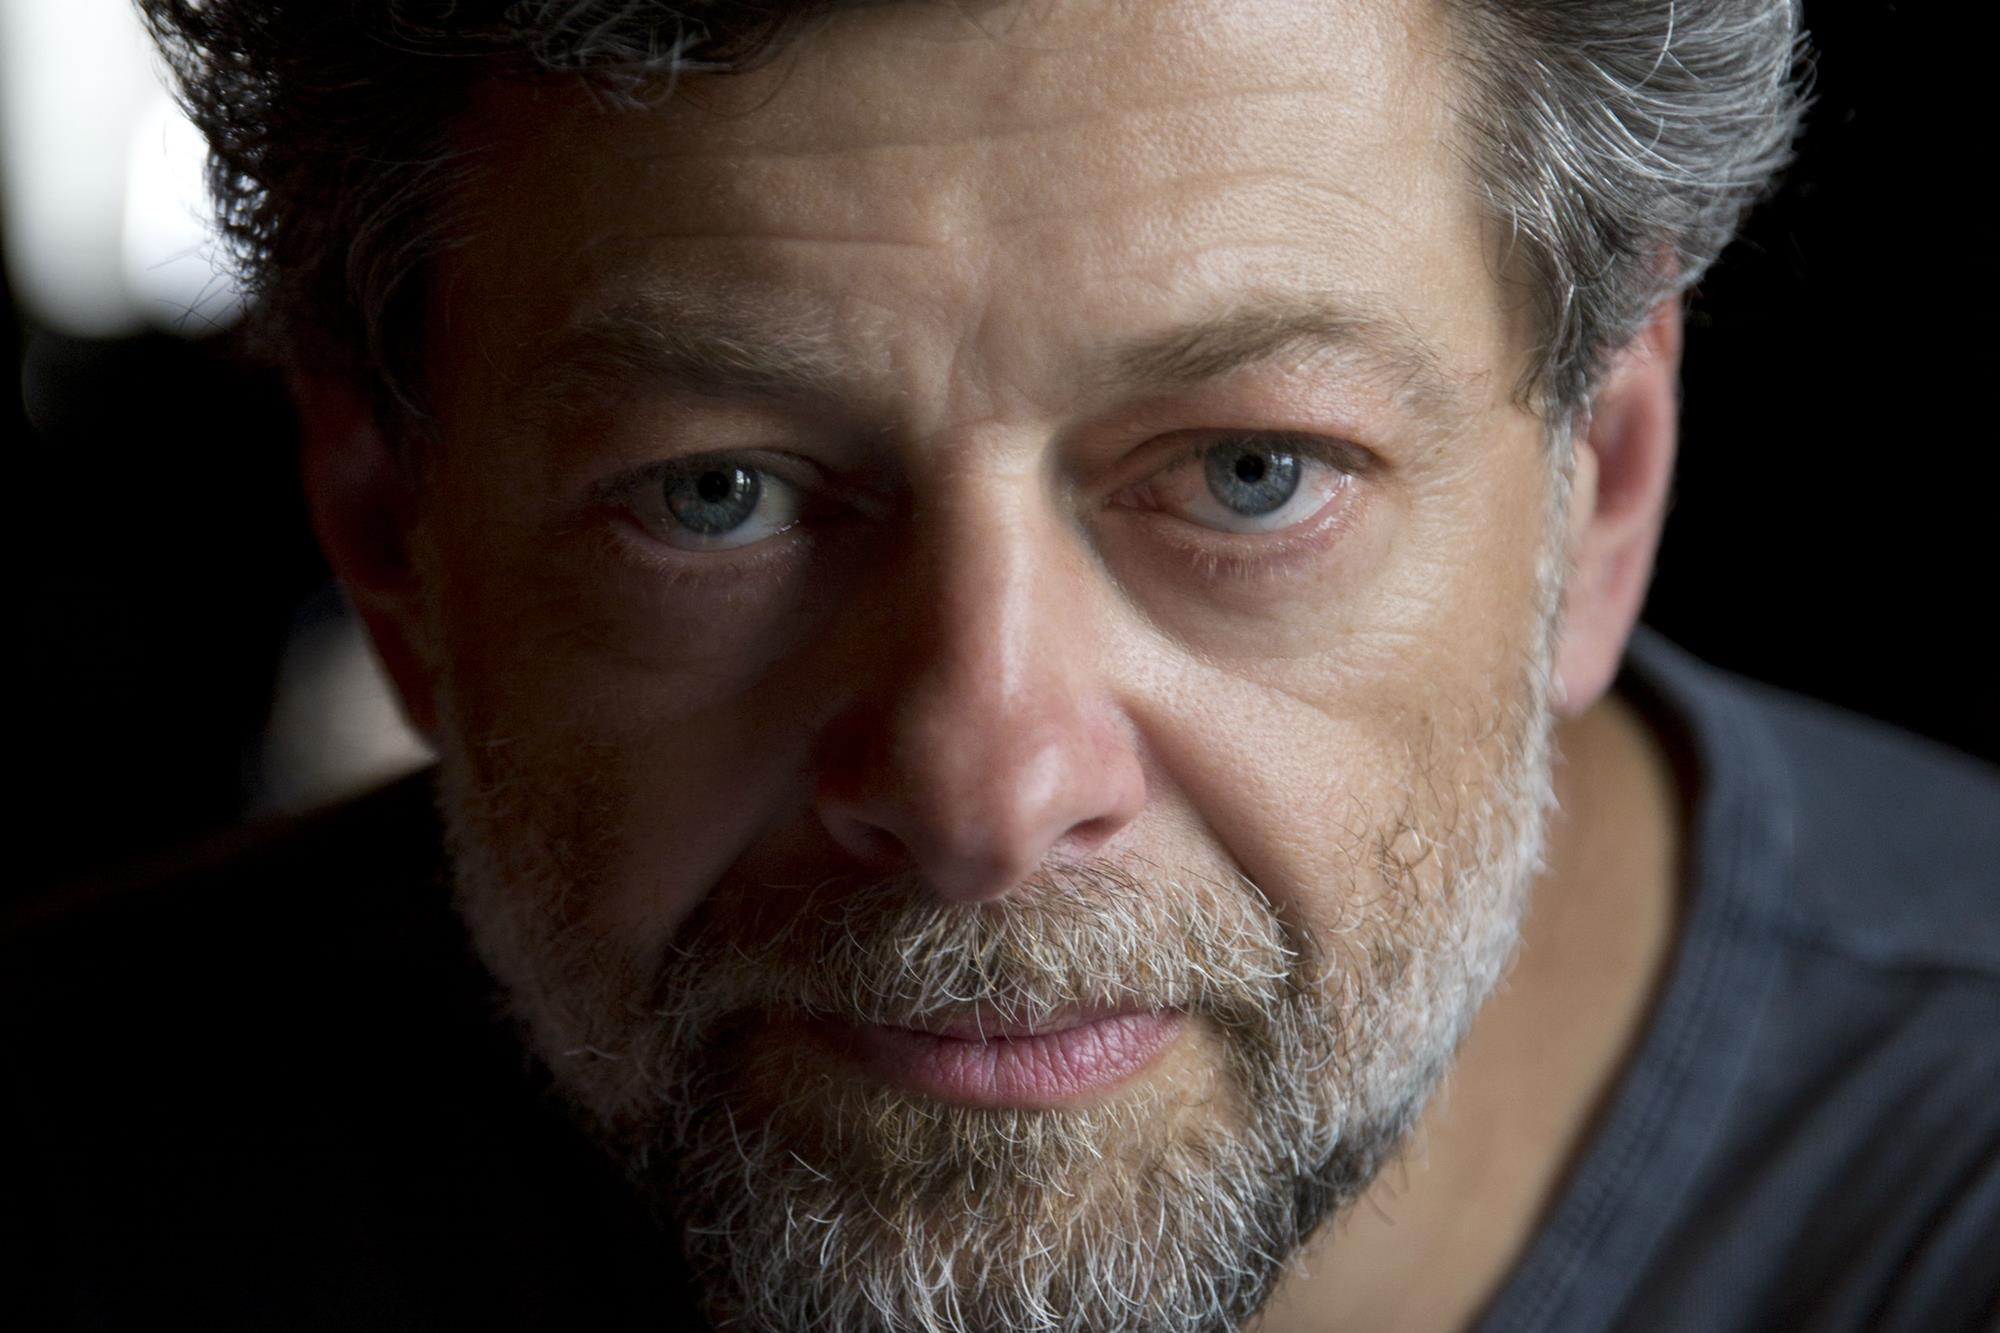 Andy Serkis rallies for digital performer rights